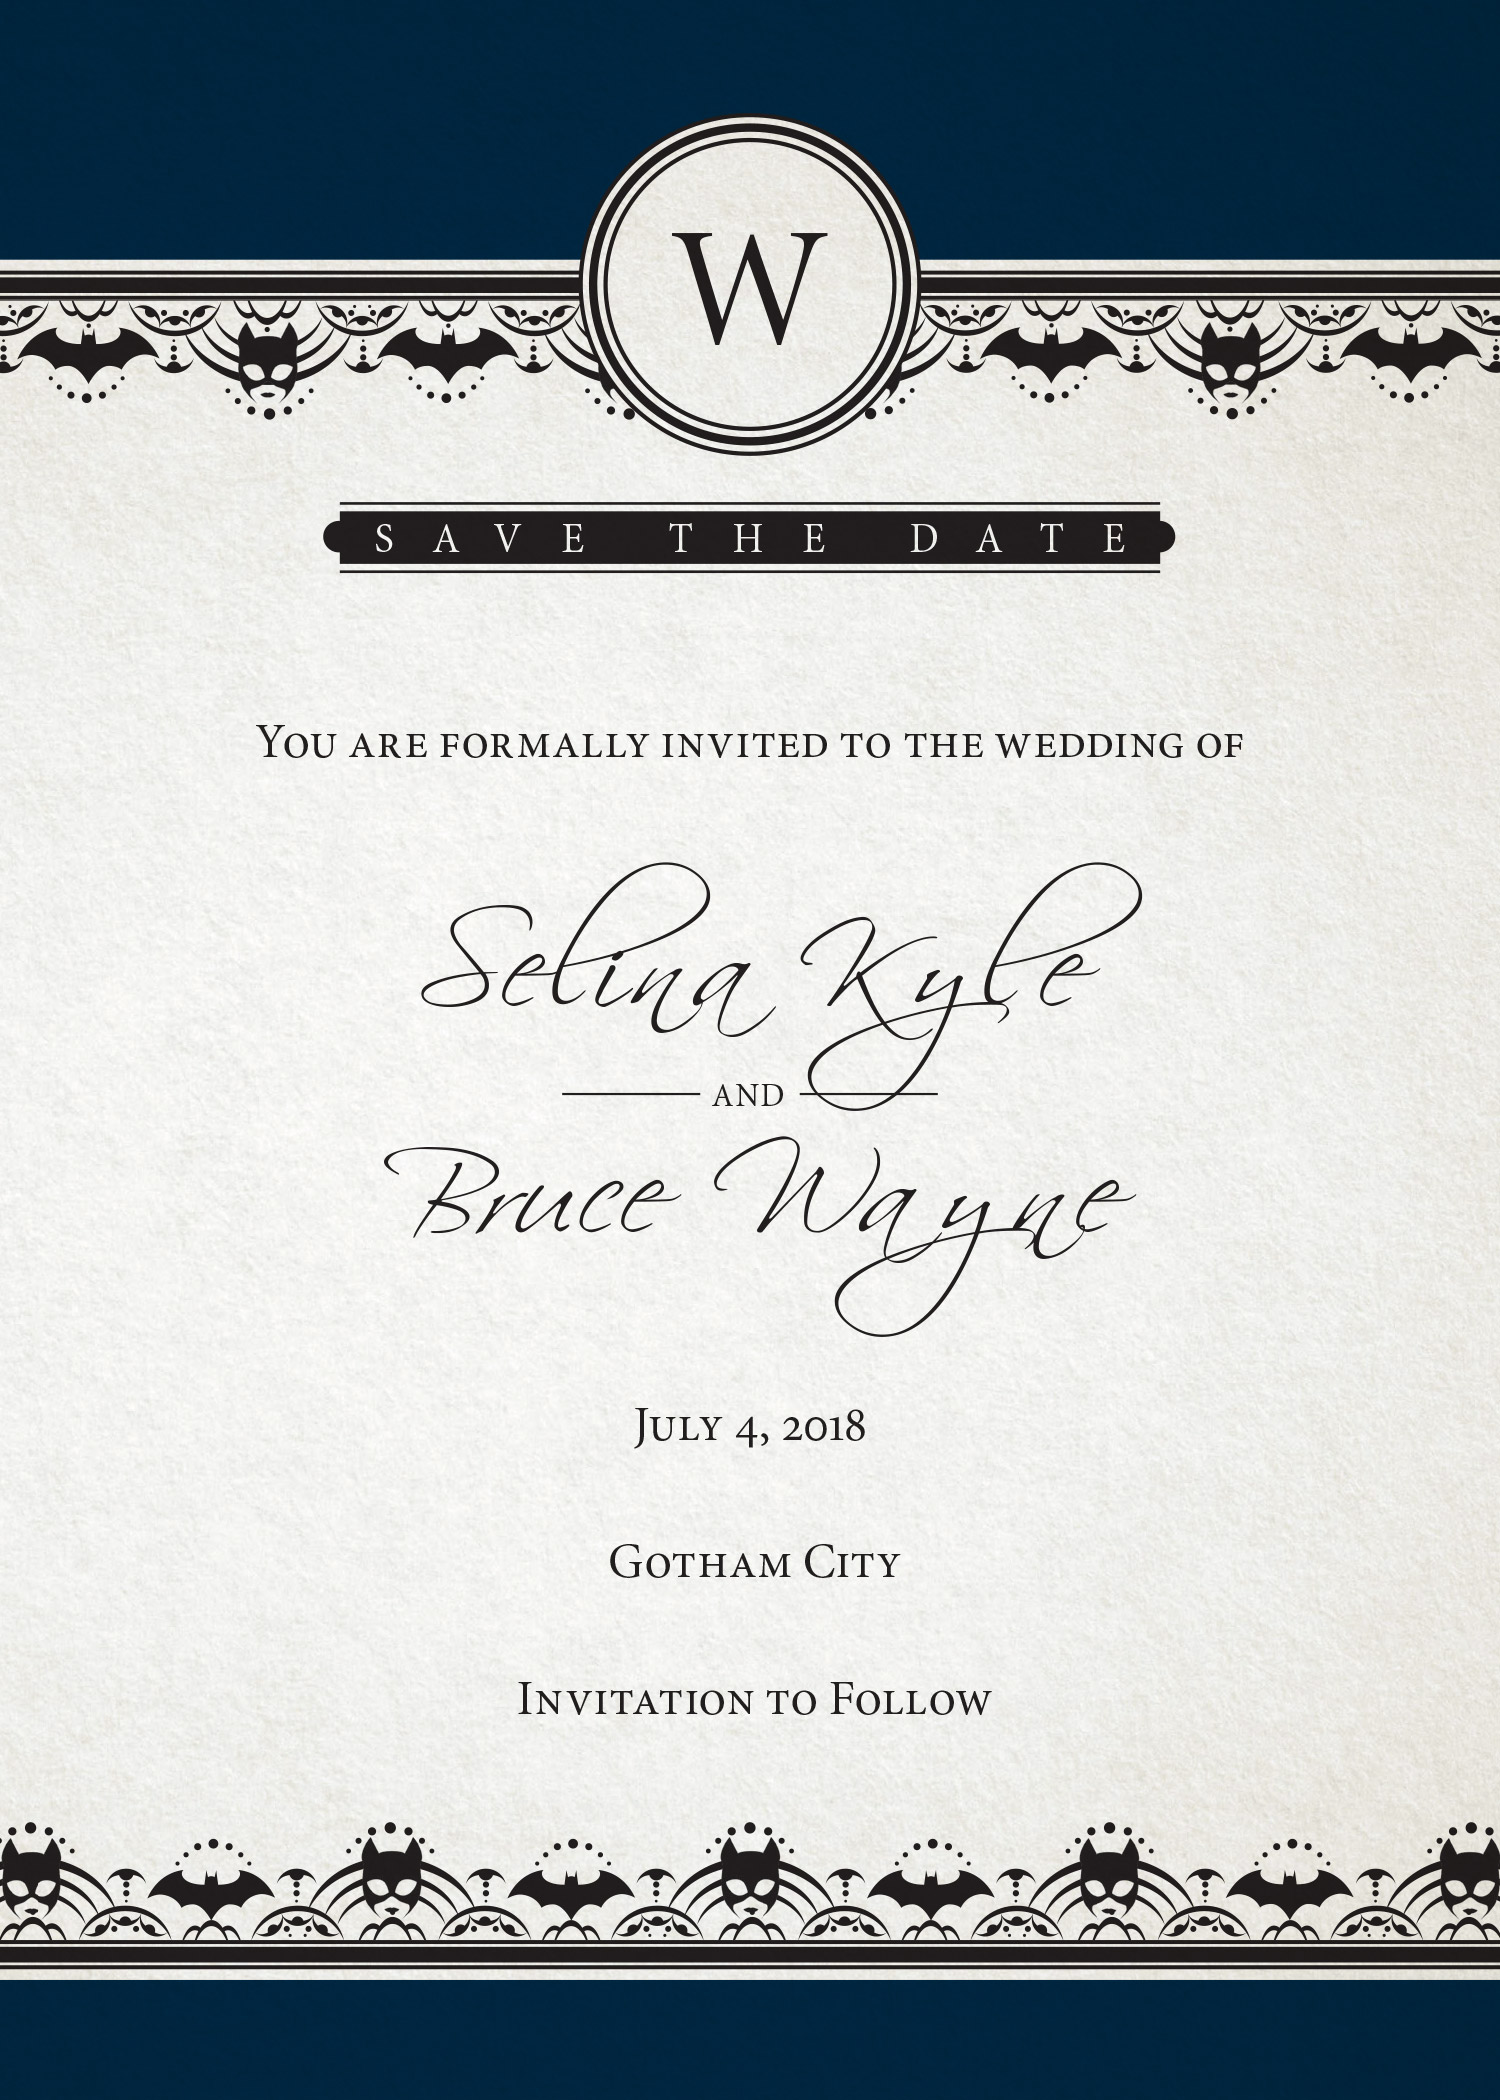 Batman Wedding \'Save The Date\' Card Revealed - Previews World